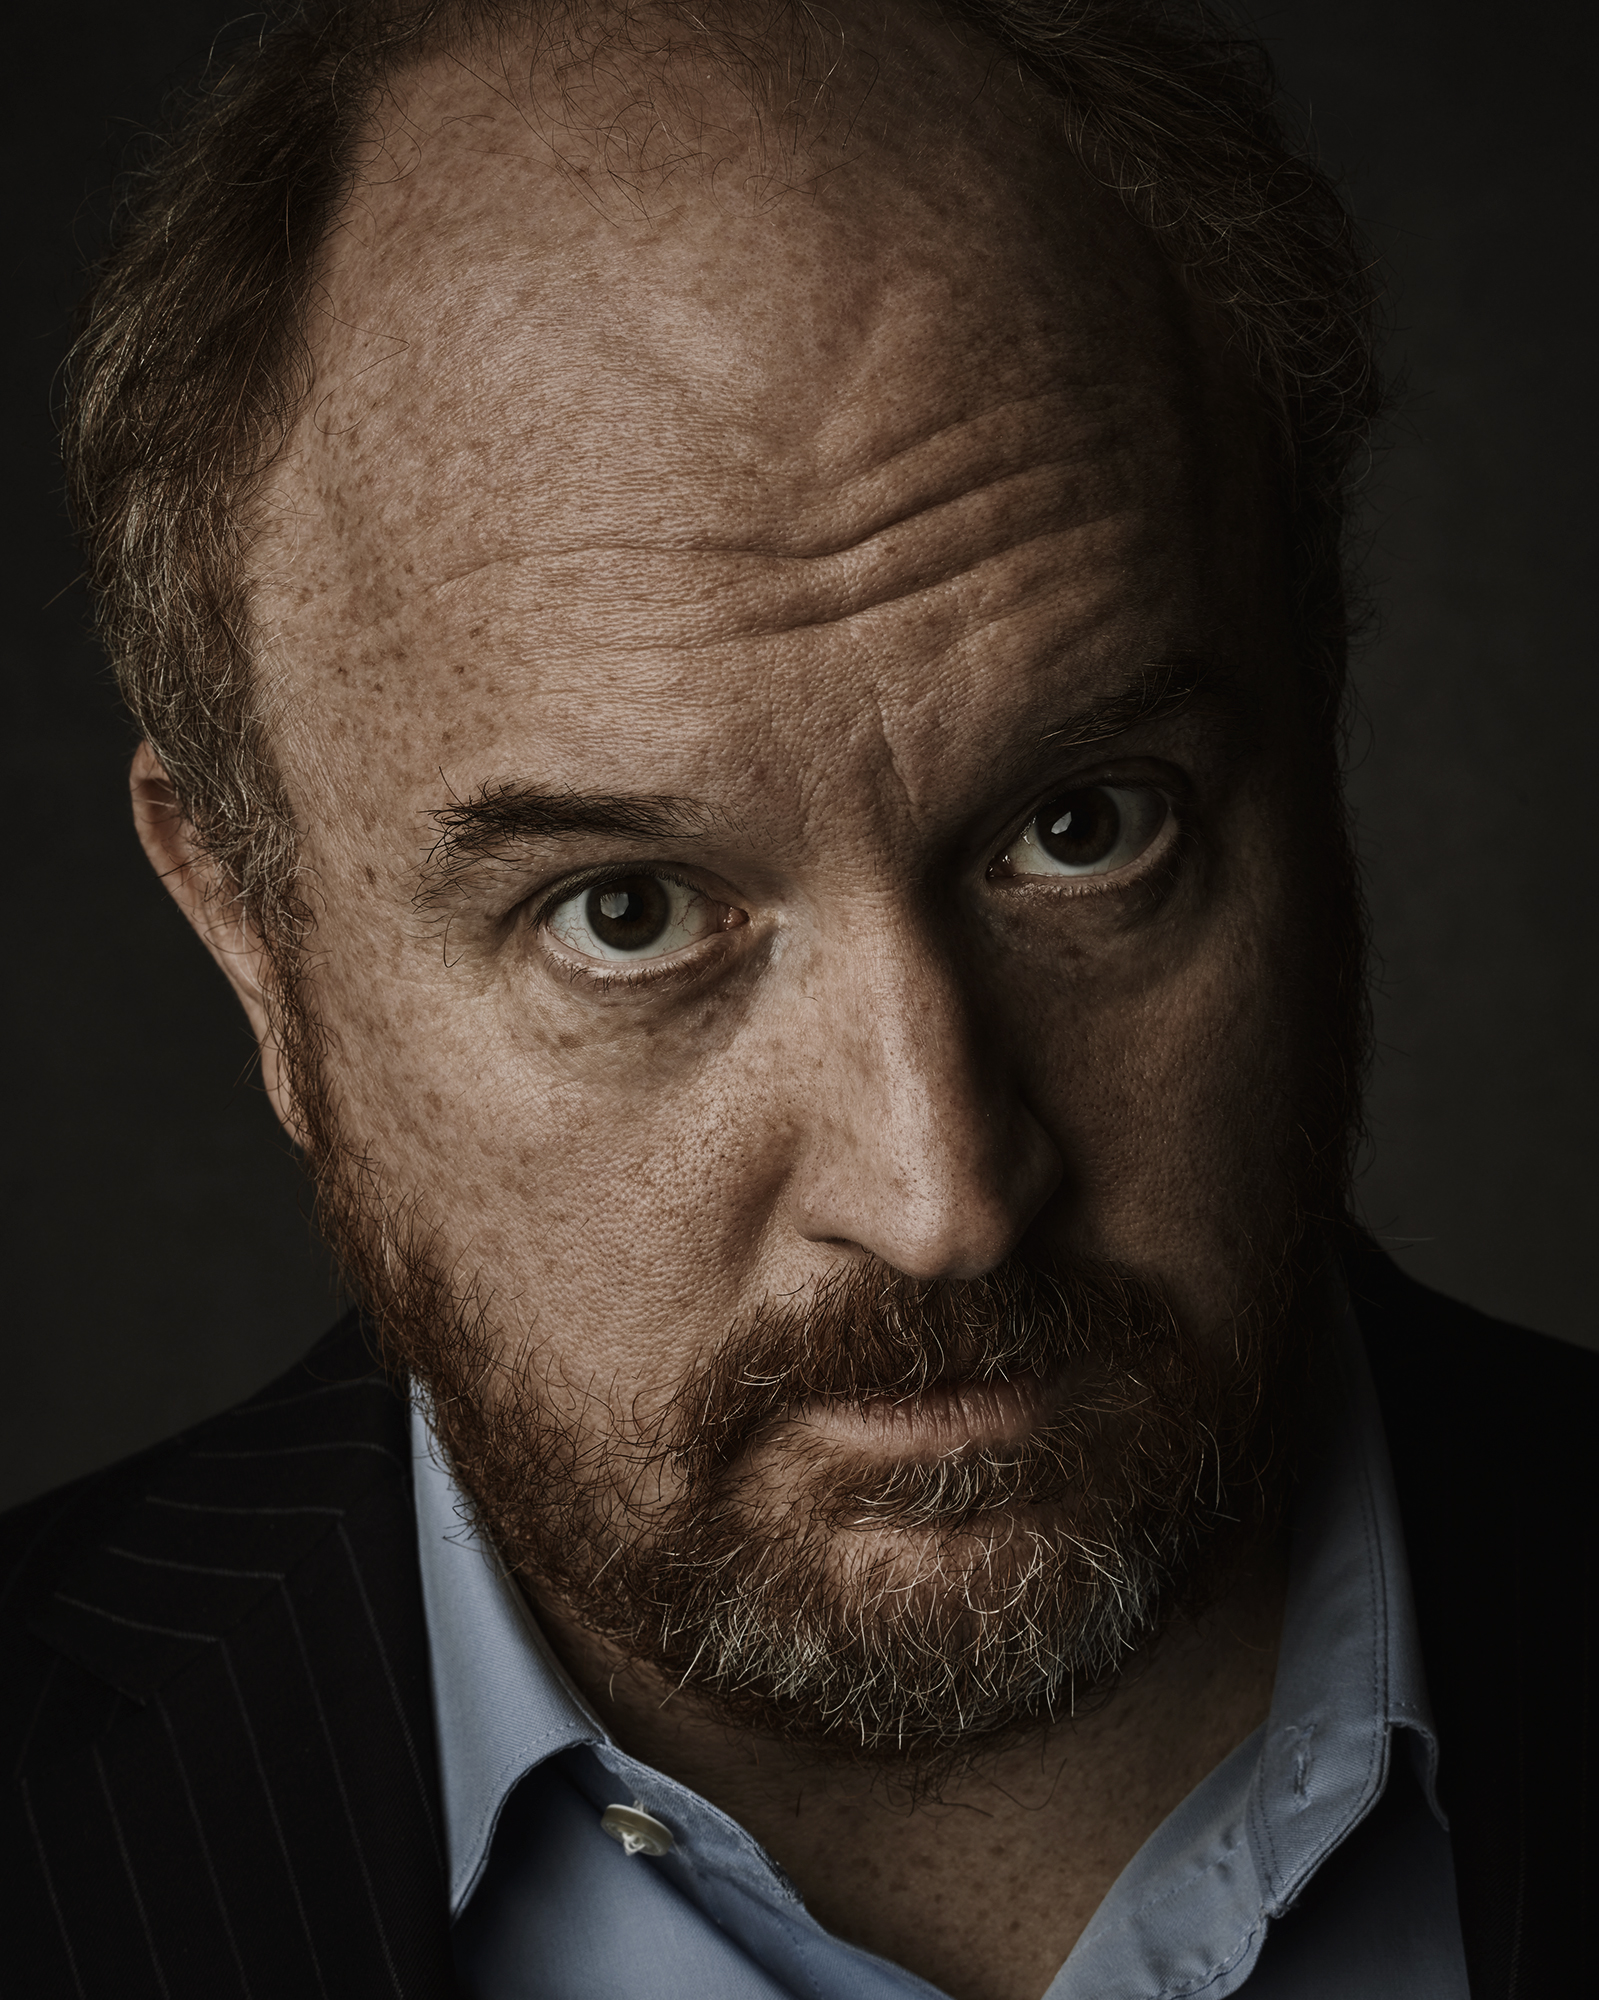 Louis-CK-headshot.jpg